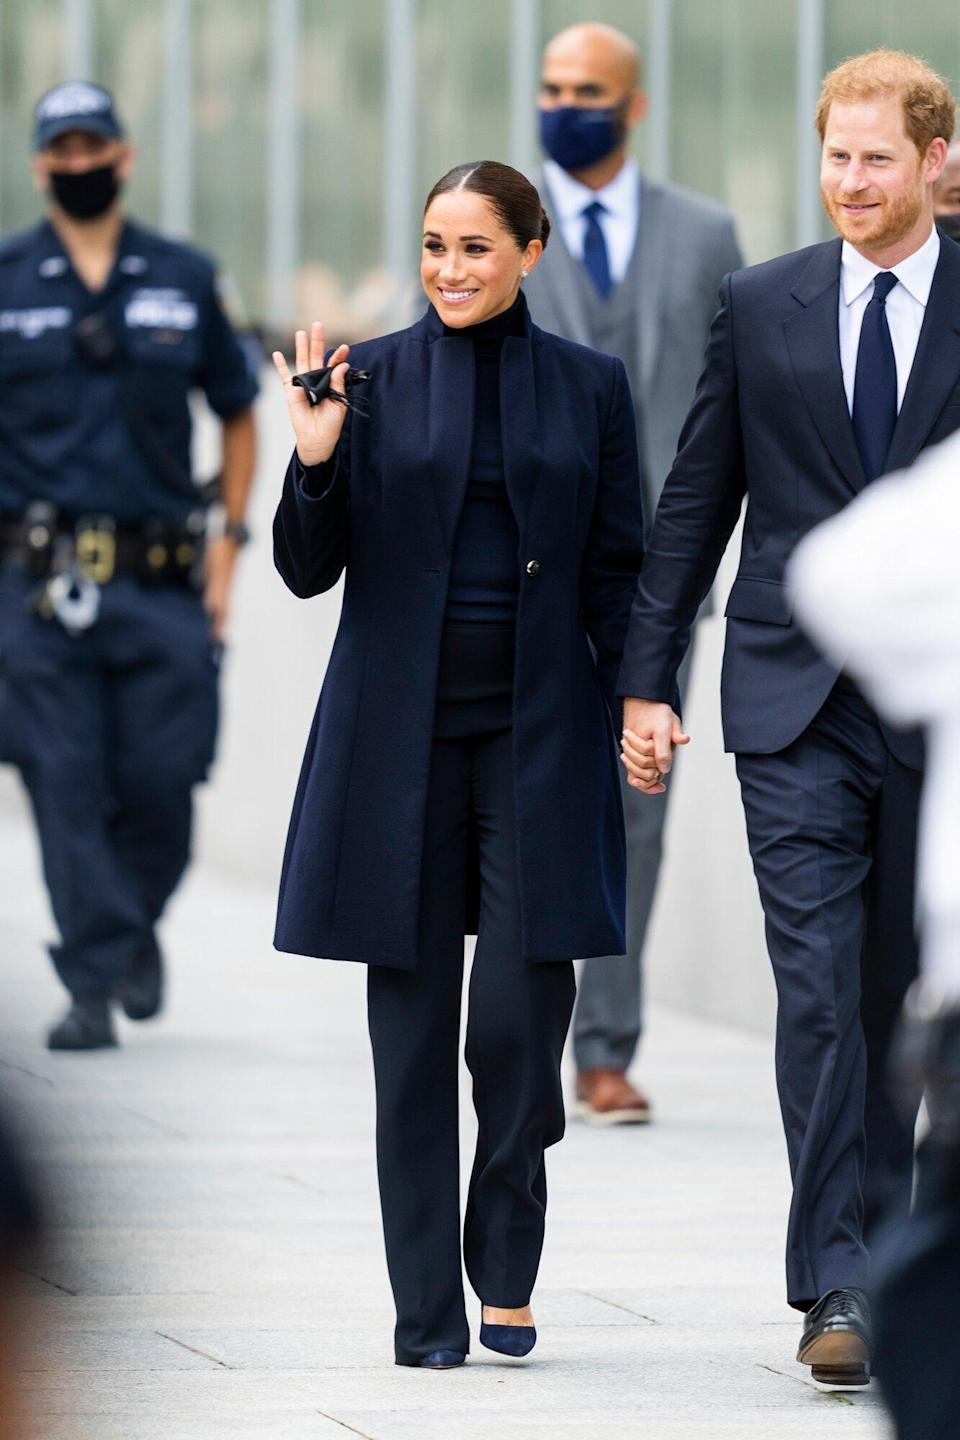 Meghan Markle Just Made a Convincing Case for This Timeless Fall Staple